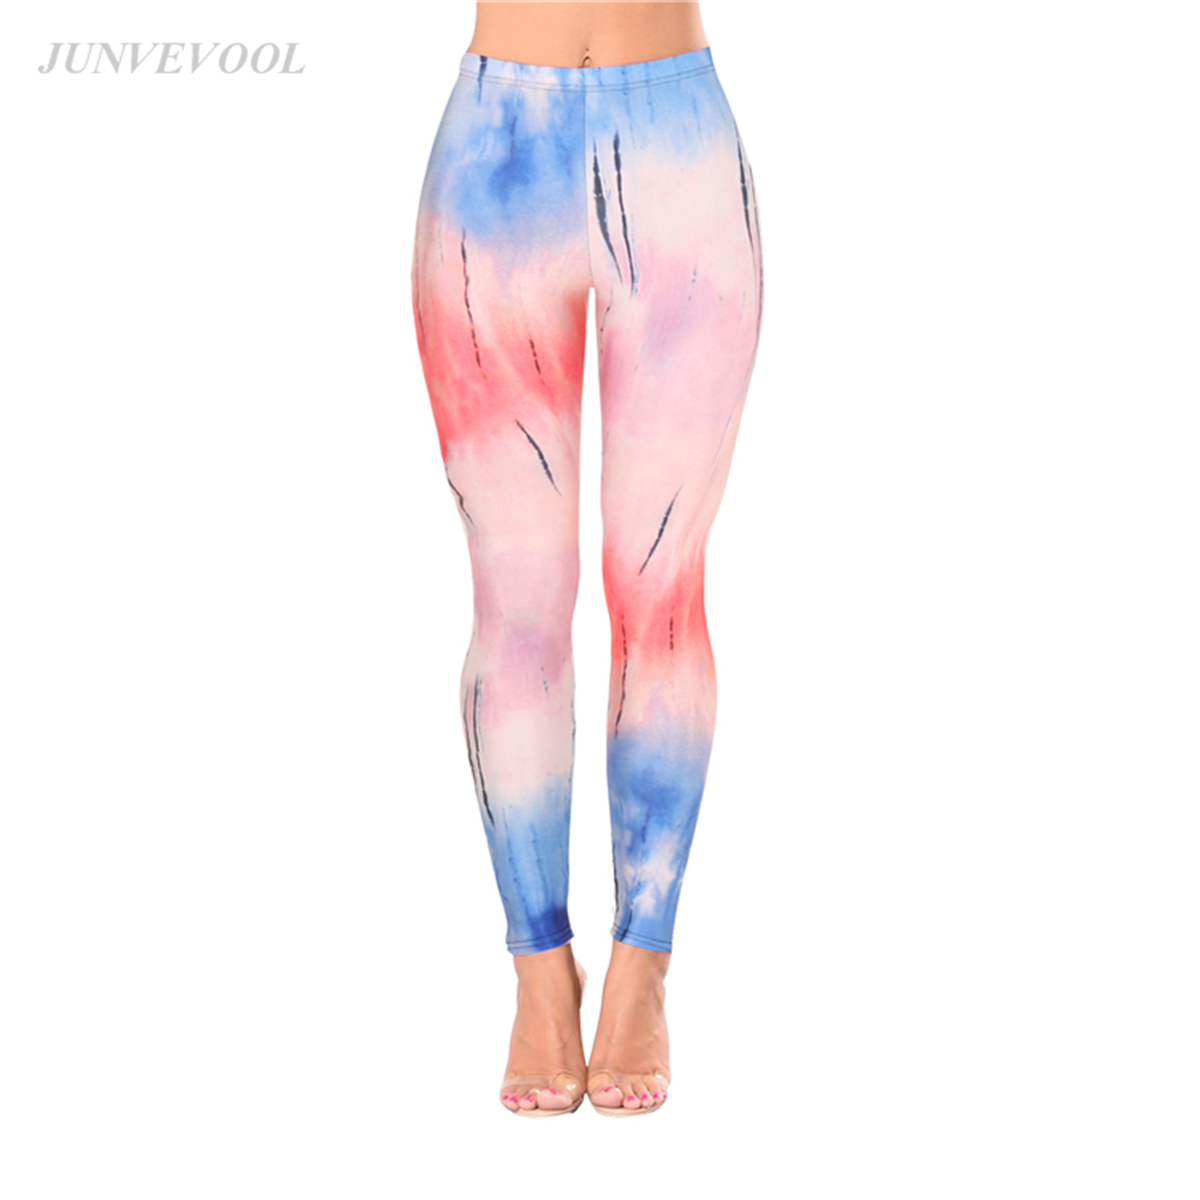 Line 3D Graffiti Workout Leggings Women New Design Pencil Pants Sexy Push Up Fashion Leggins Femme Vintage Fitness Crop Legging